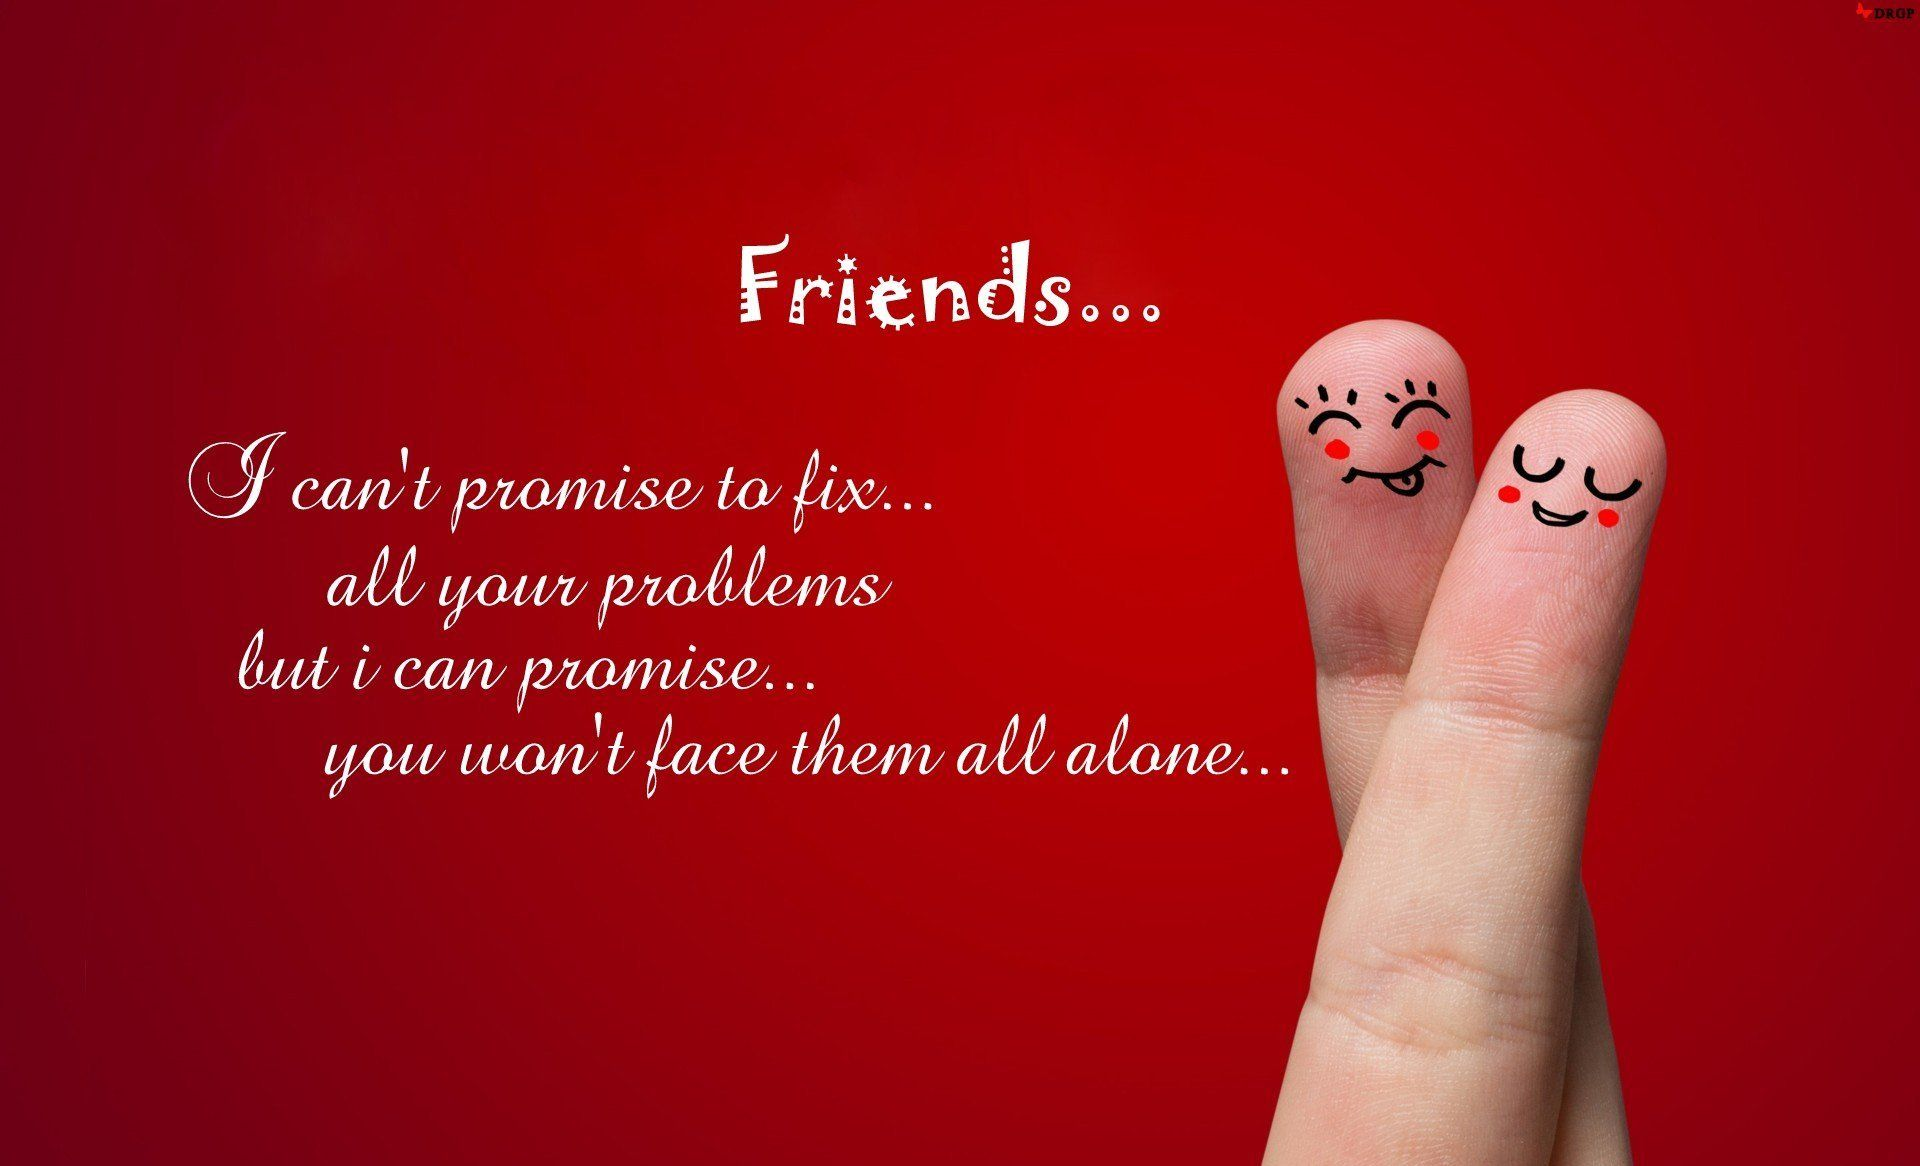 Best Friendship Quotes Best Friendship Quotes Collection  Text Messages Collection